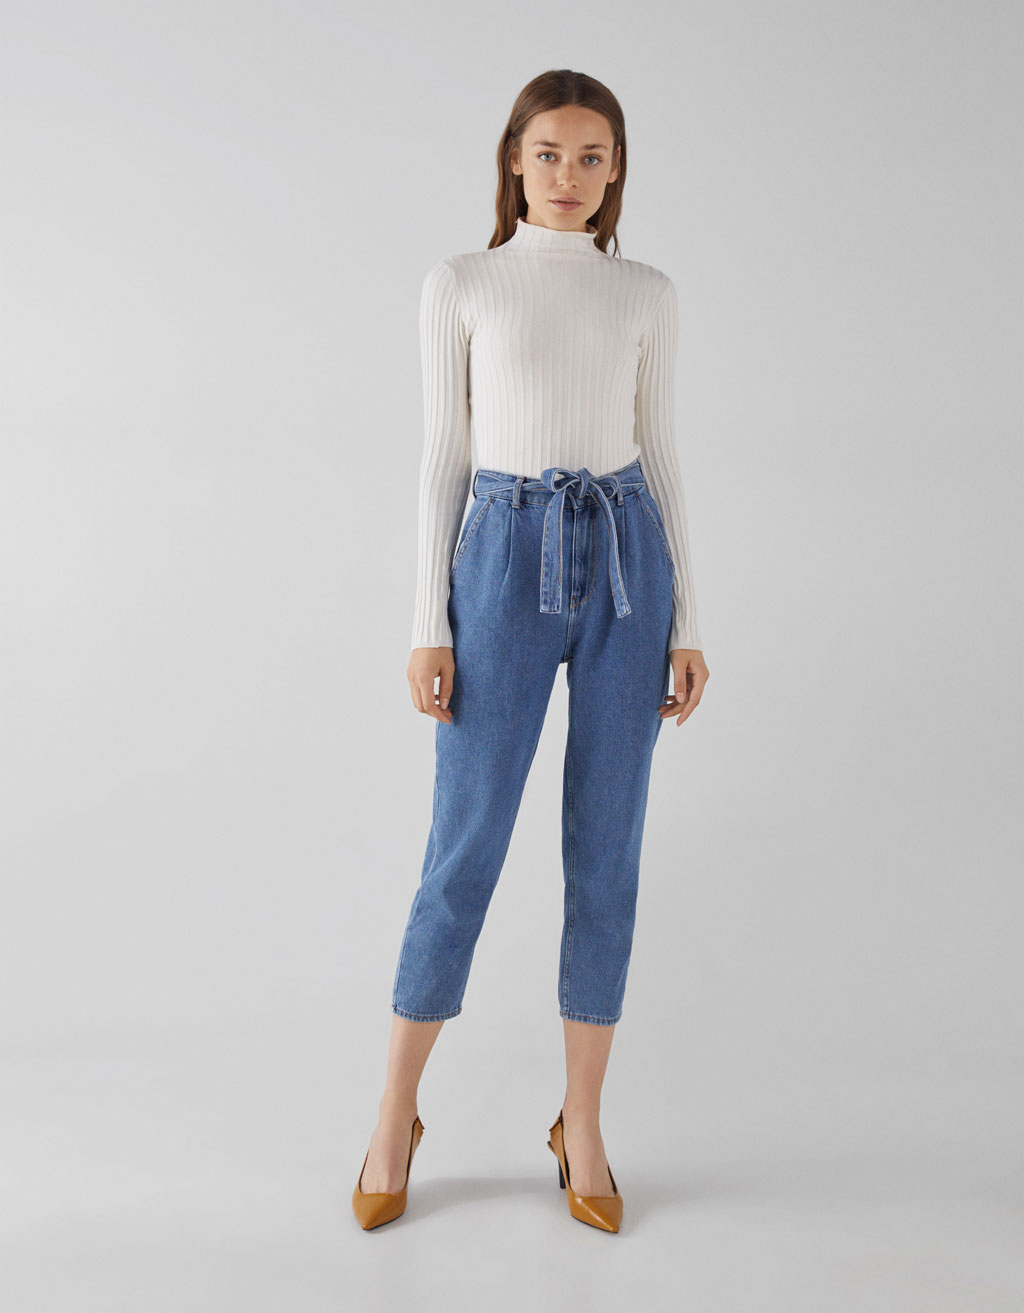 Paperbag jeans with belt